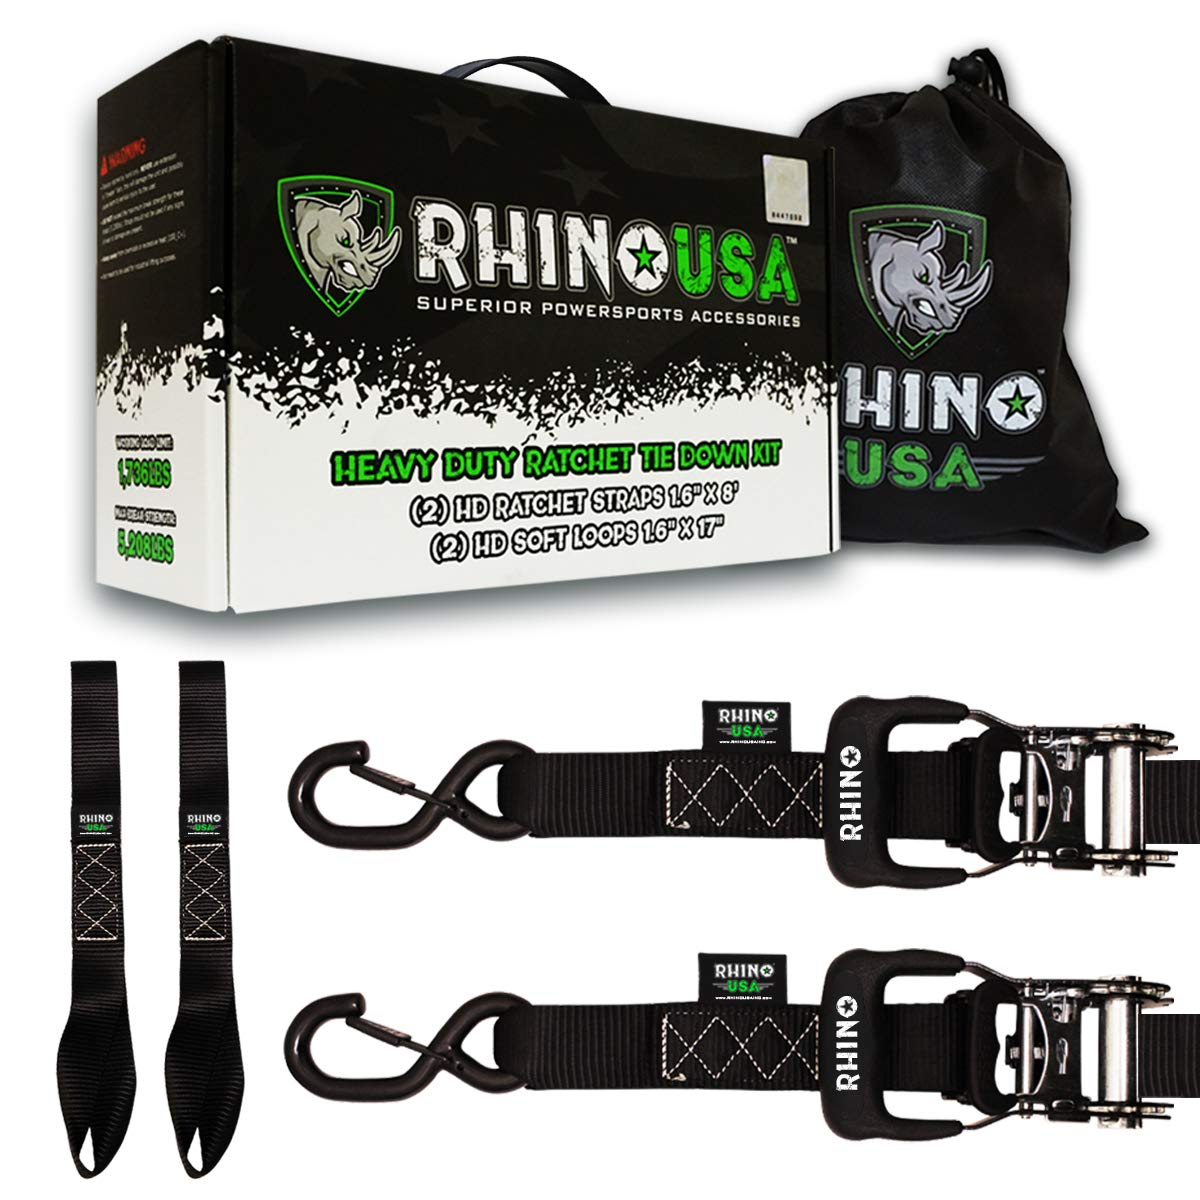 HINO USA Ratchet Straps Motorcycle Tie Down Kit